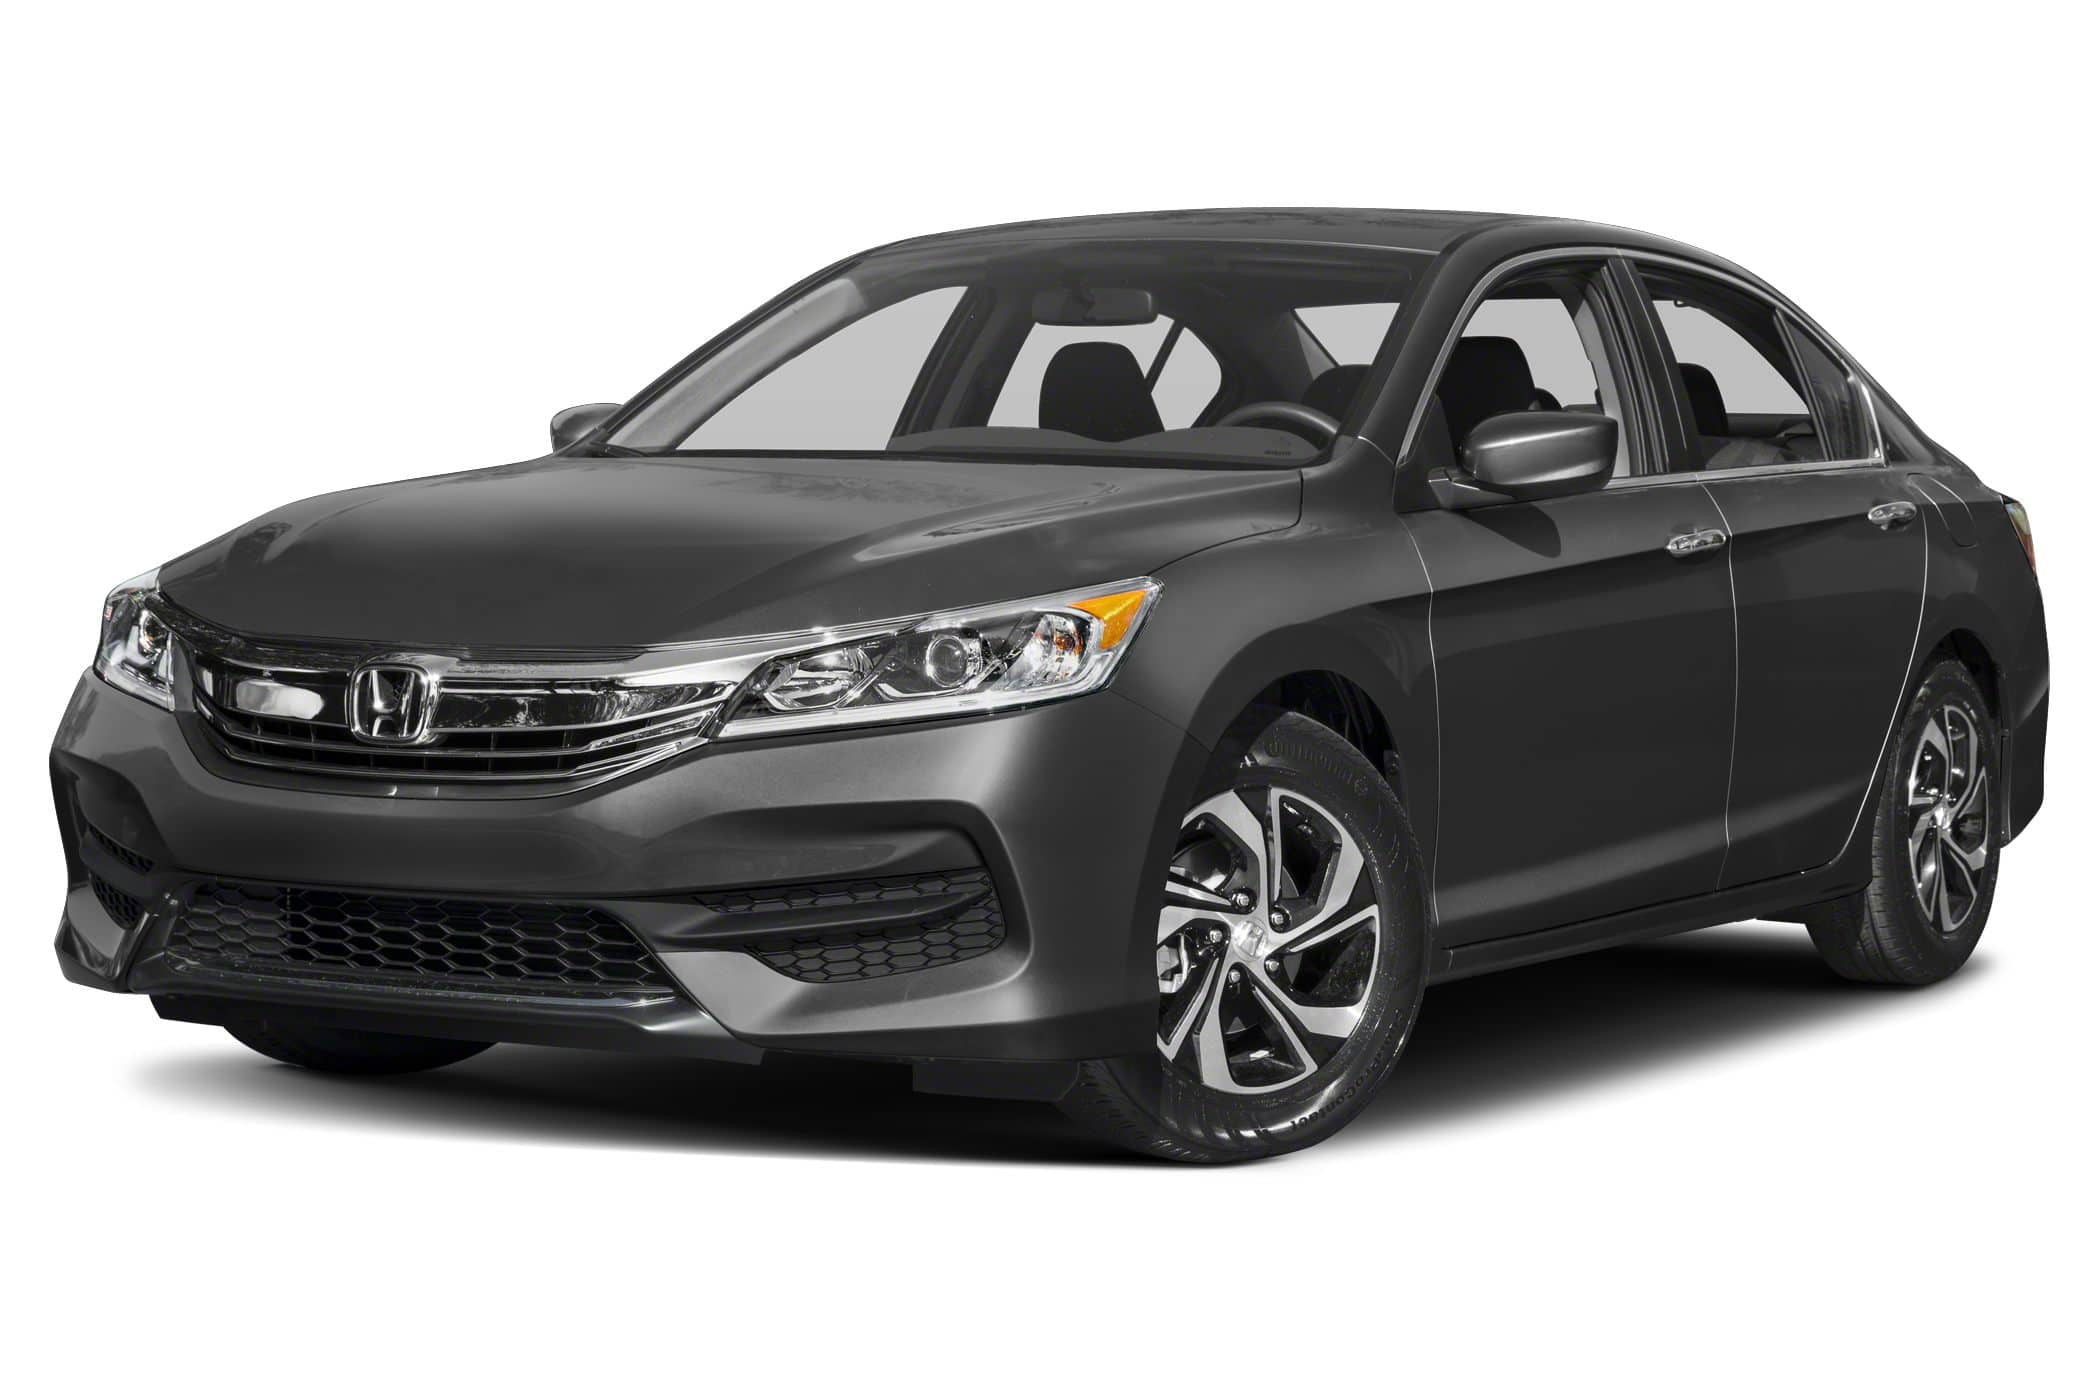 Honda Accord Car Rental Price